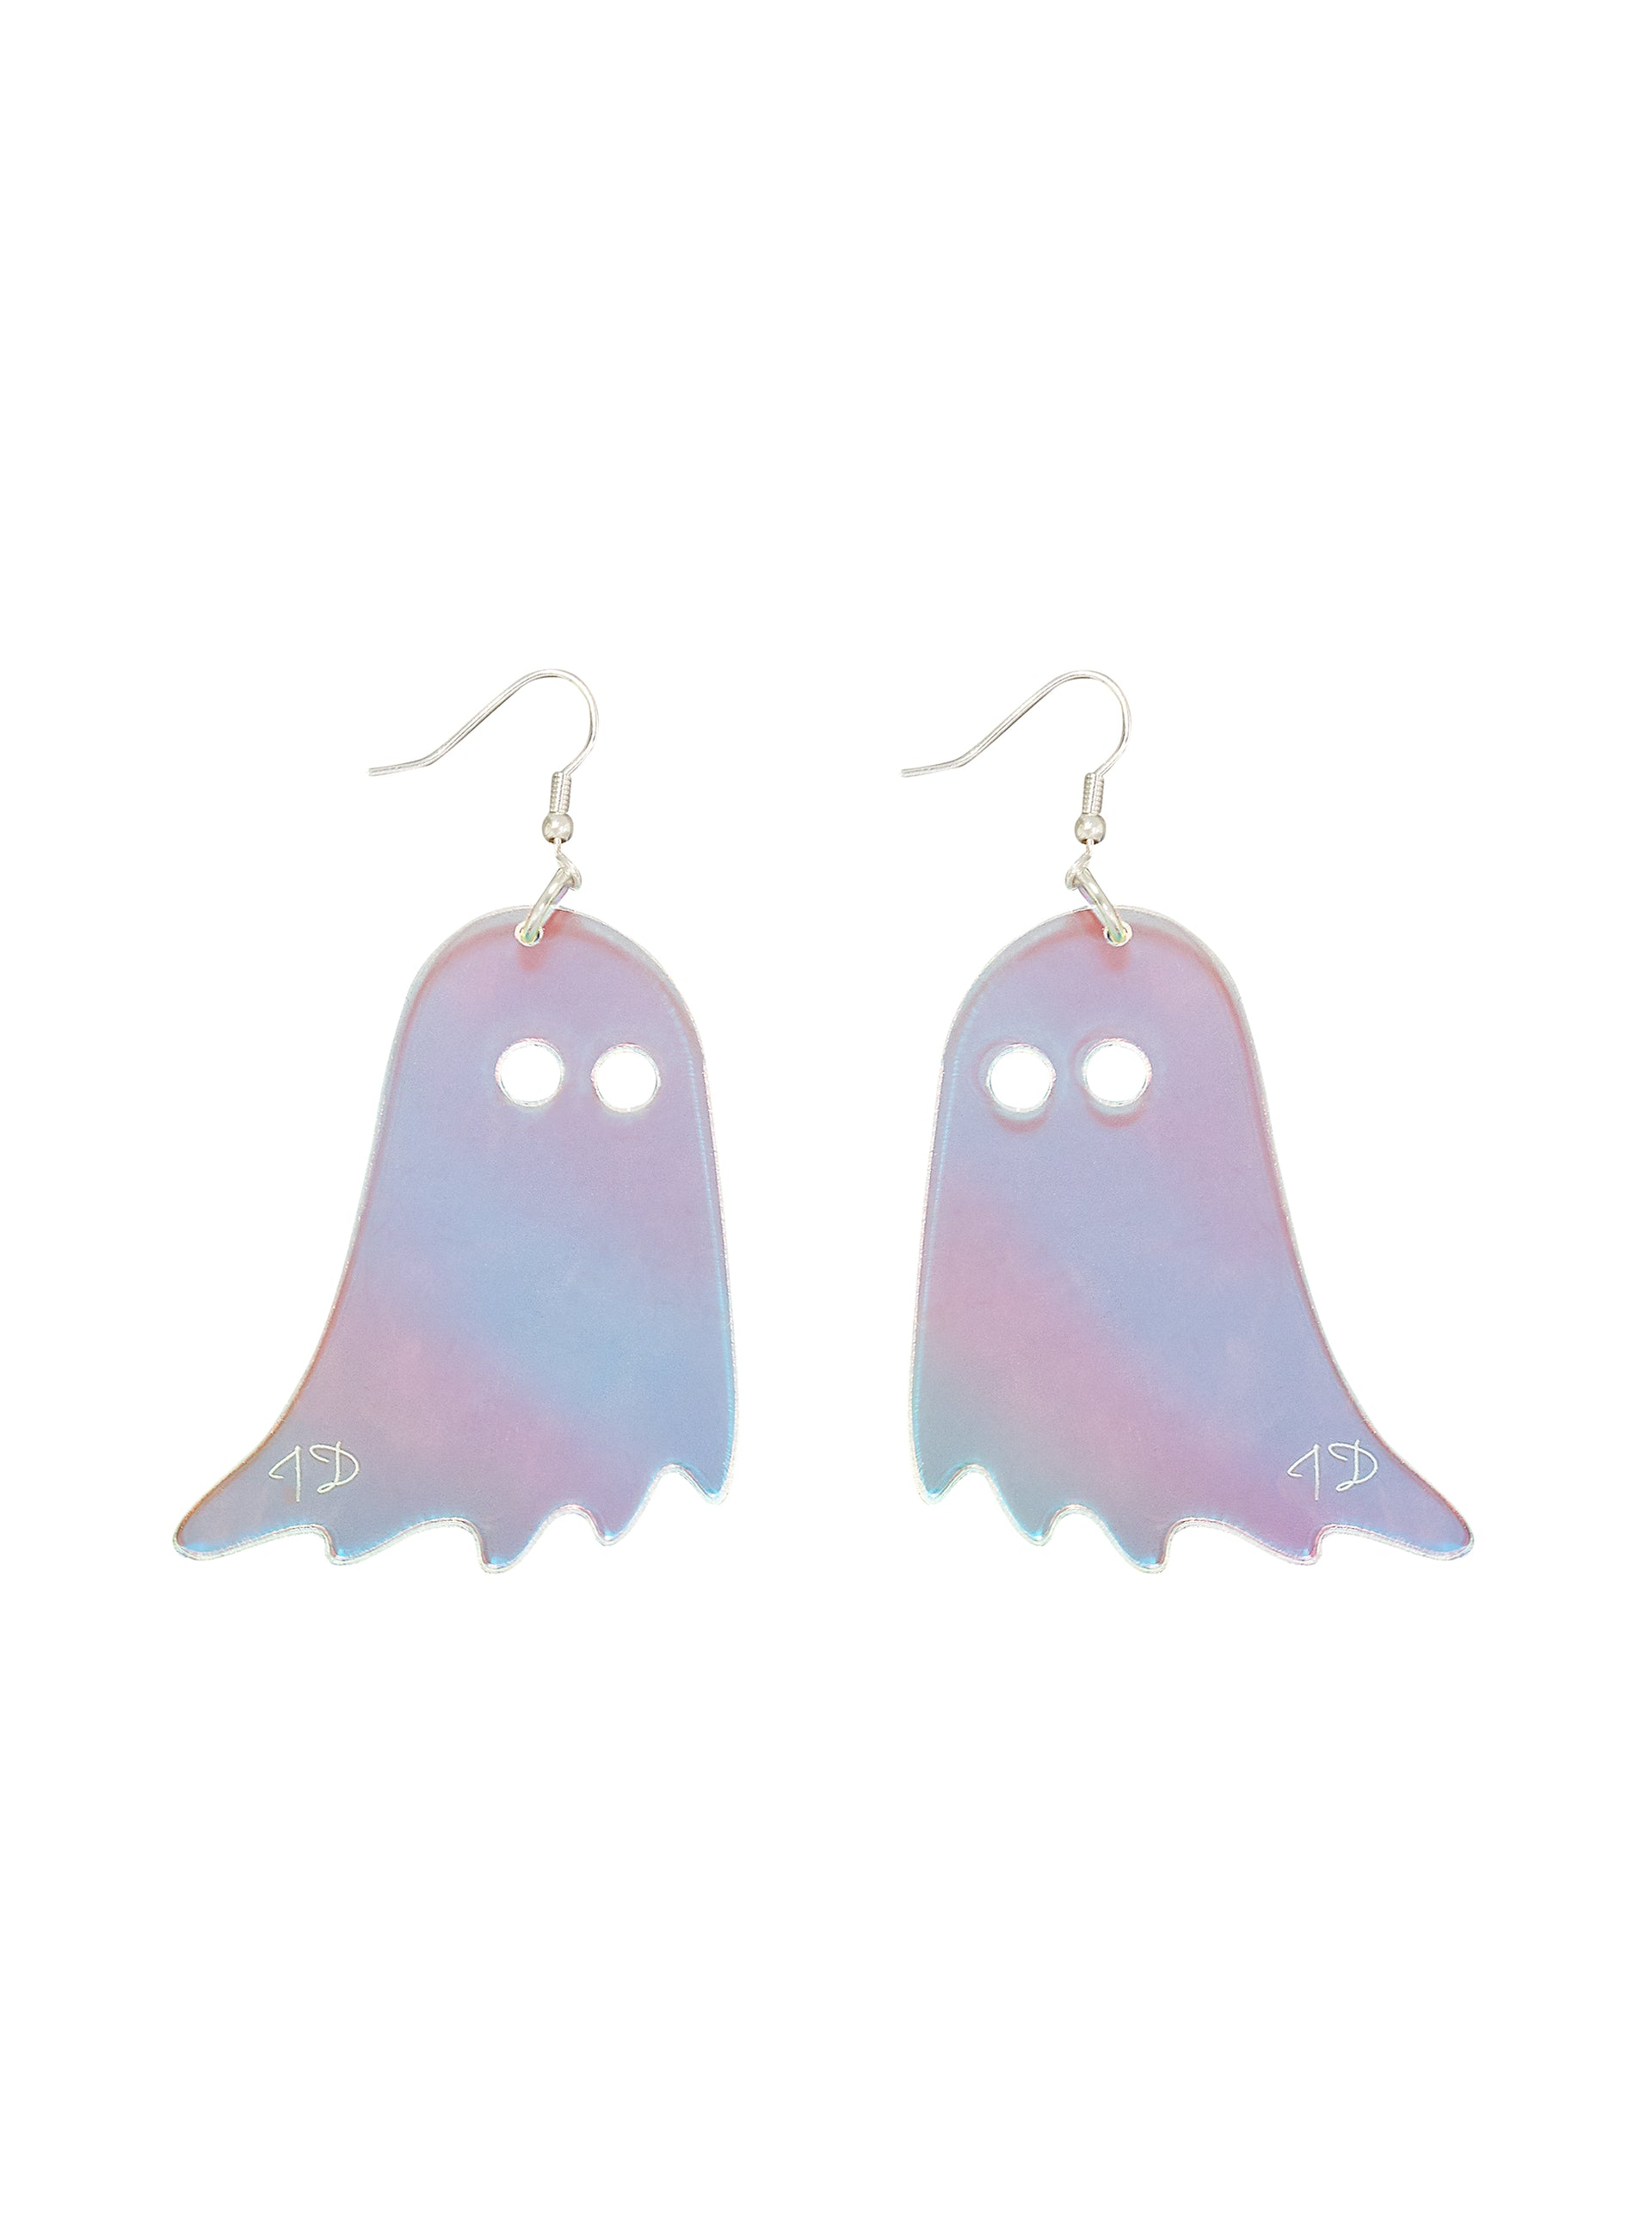 Ghost Earrings - Iridescent